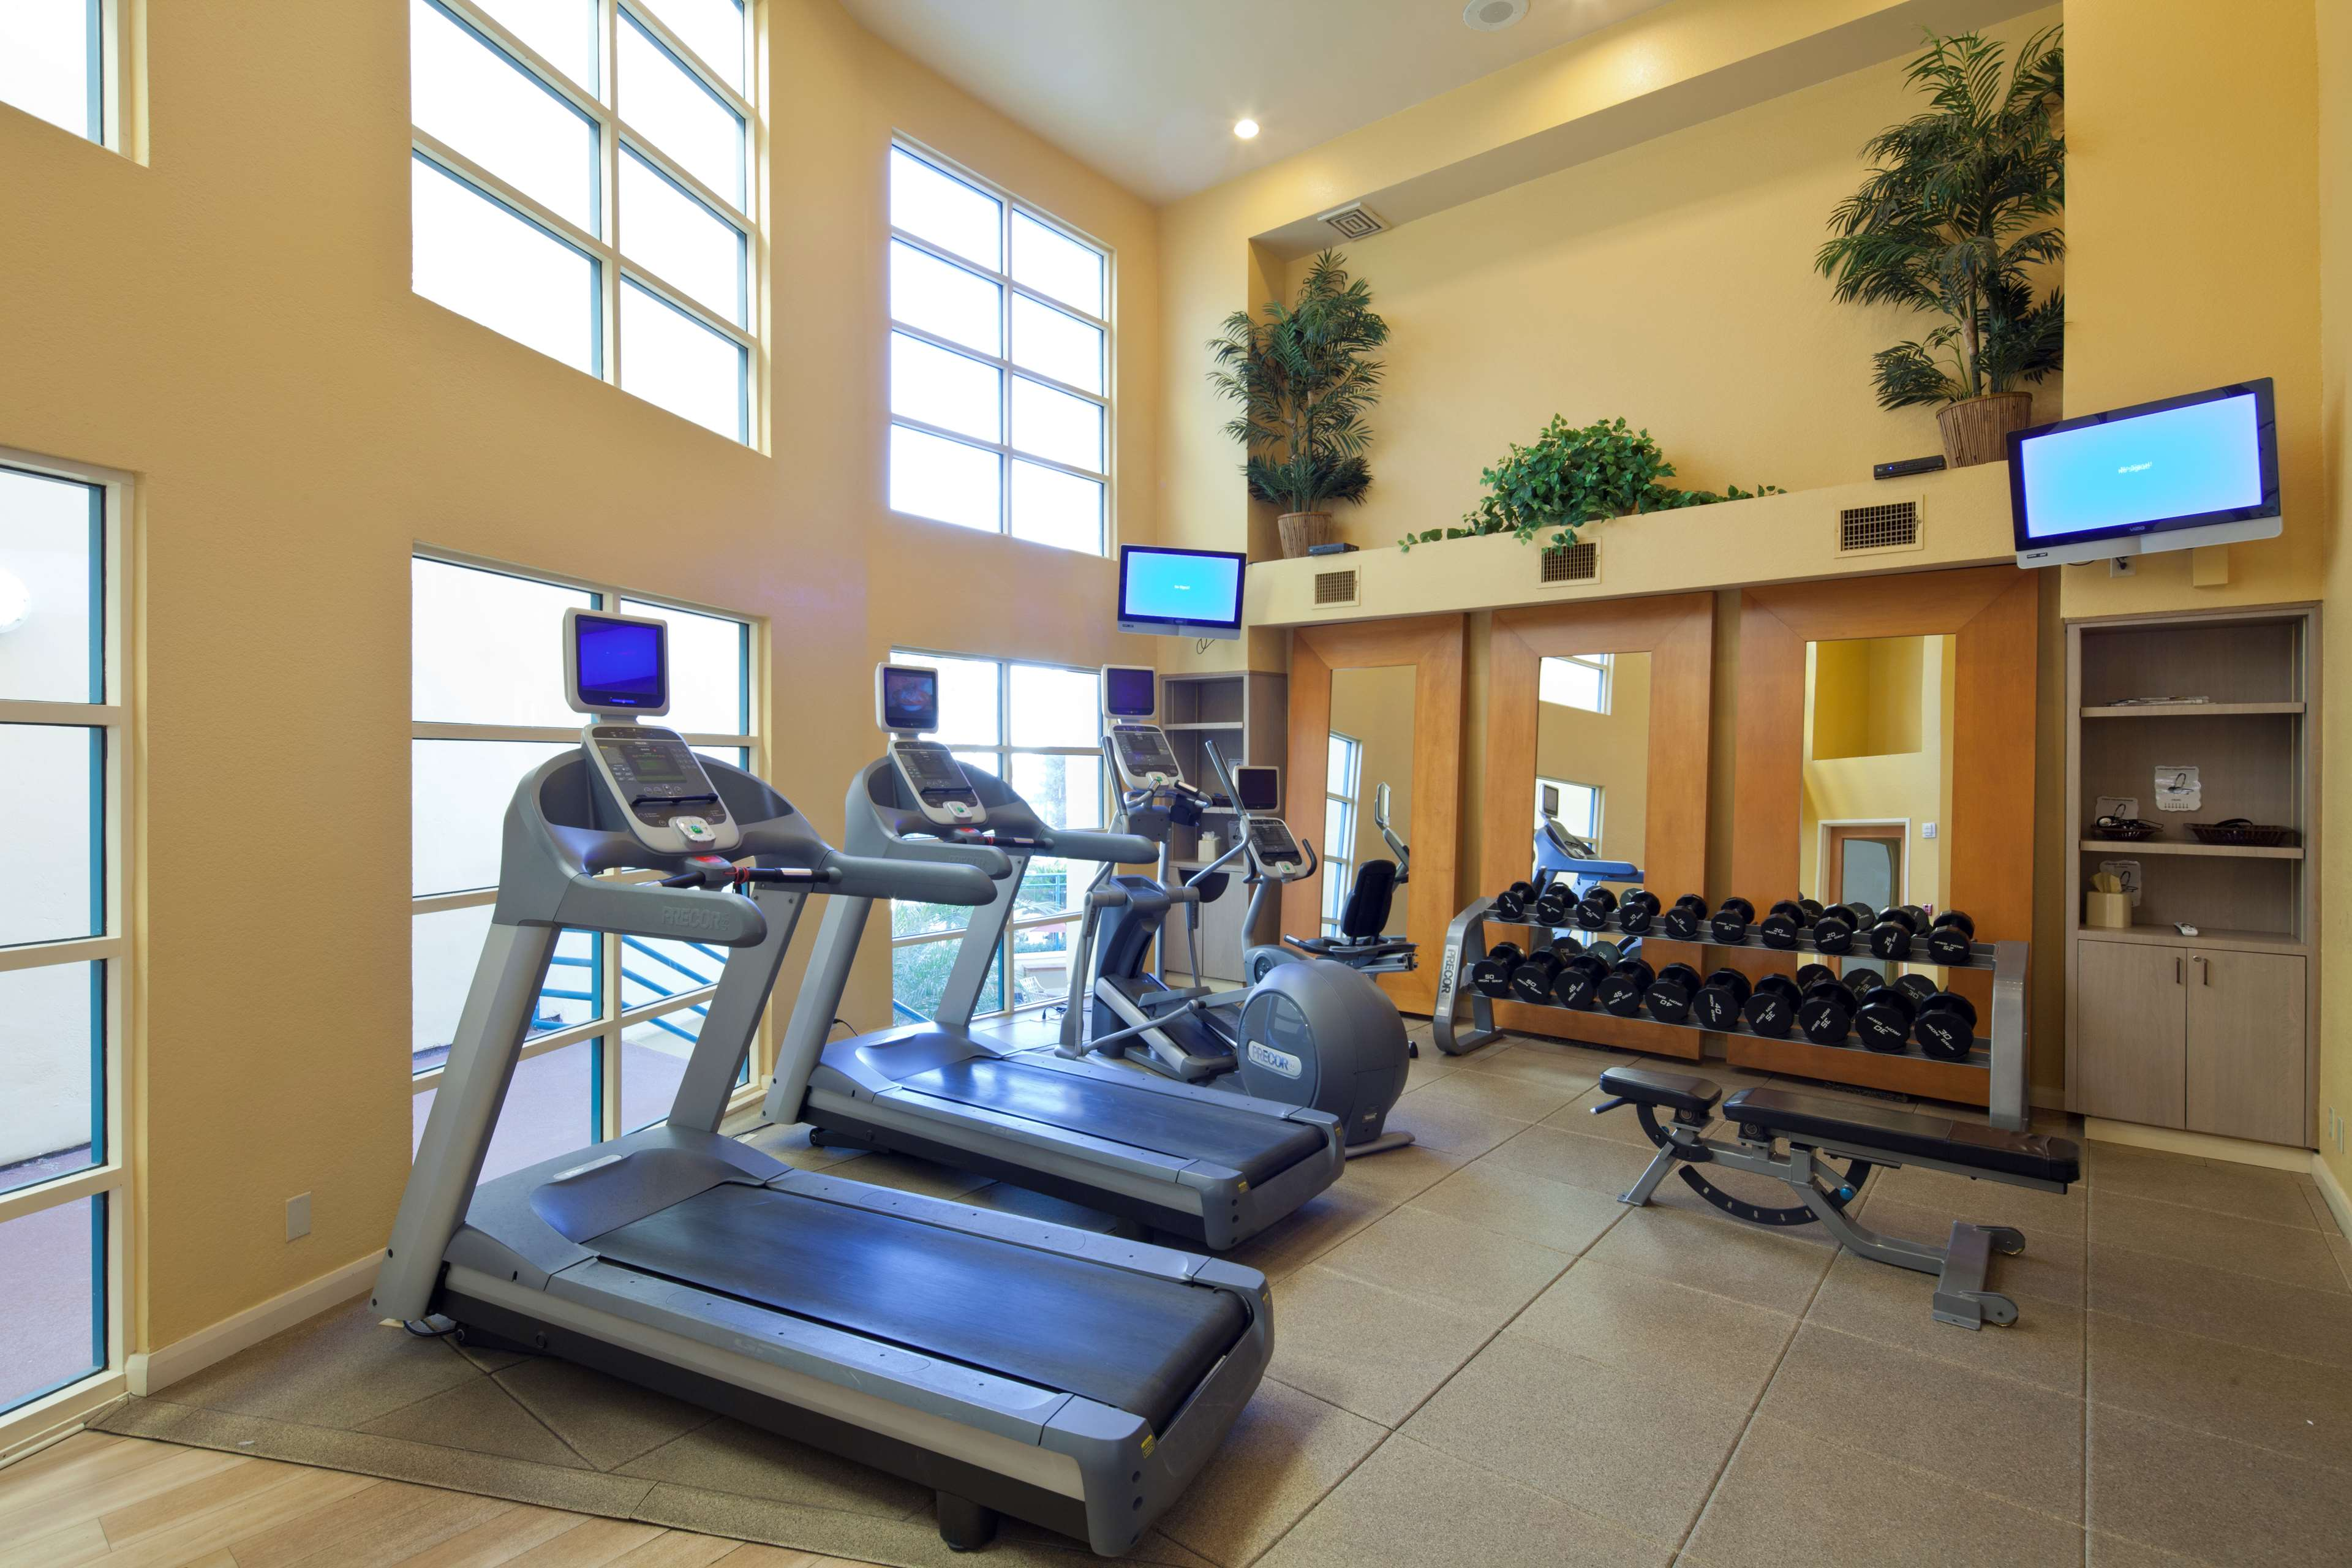 DoubleTree Suites by Hilton Hotel Doheny Beach - Dana Point image 22